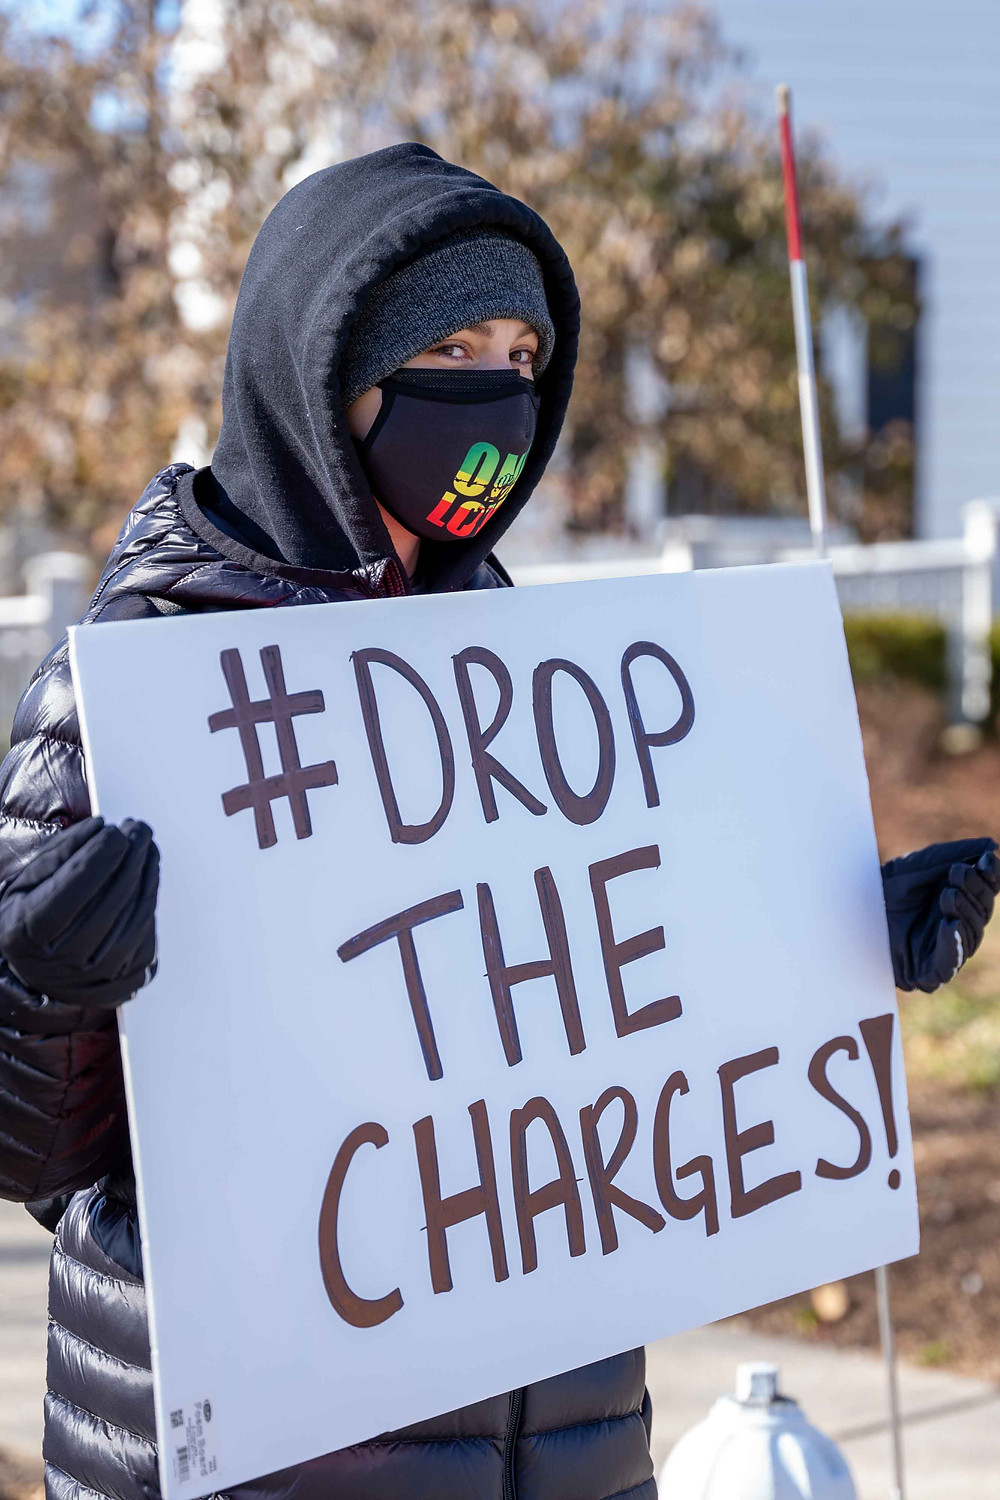 """A protester poses for a photograph while holding a protest sign saying """"#DropTheCharges!"""" and standing in solidarity with Nick Haas, while outside the Ramsey Borough Hall on Sunday, Jan.24th, 2021. (Photo/Julian Leshay)"""